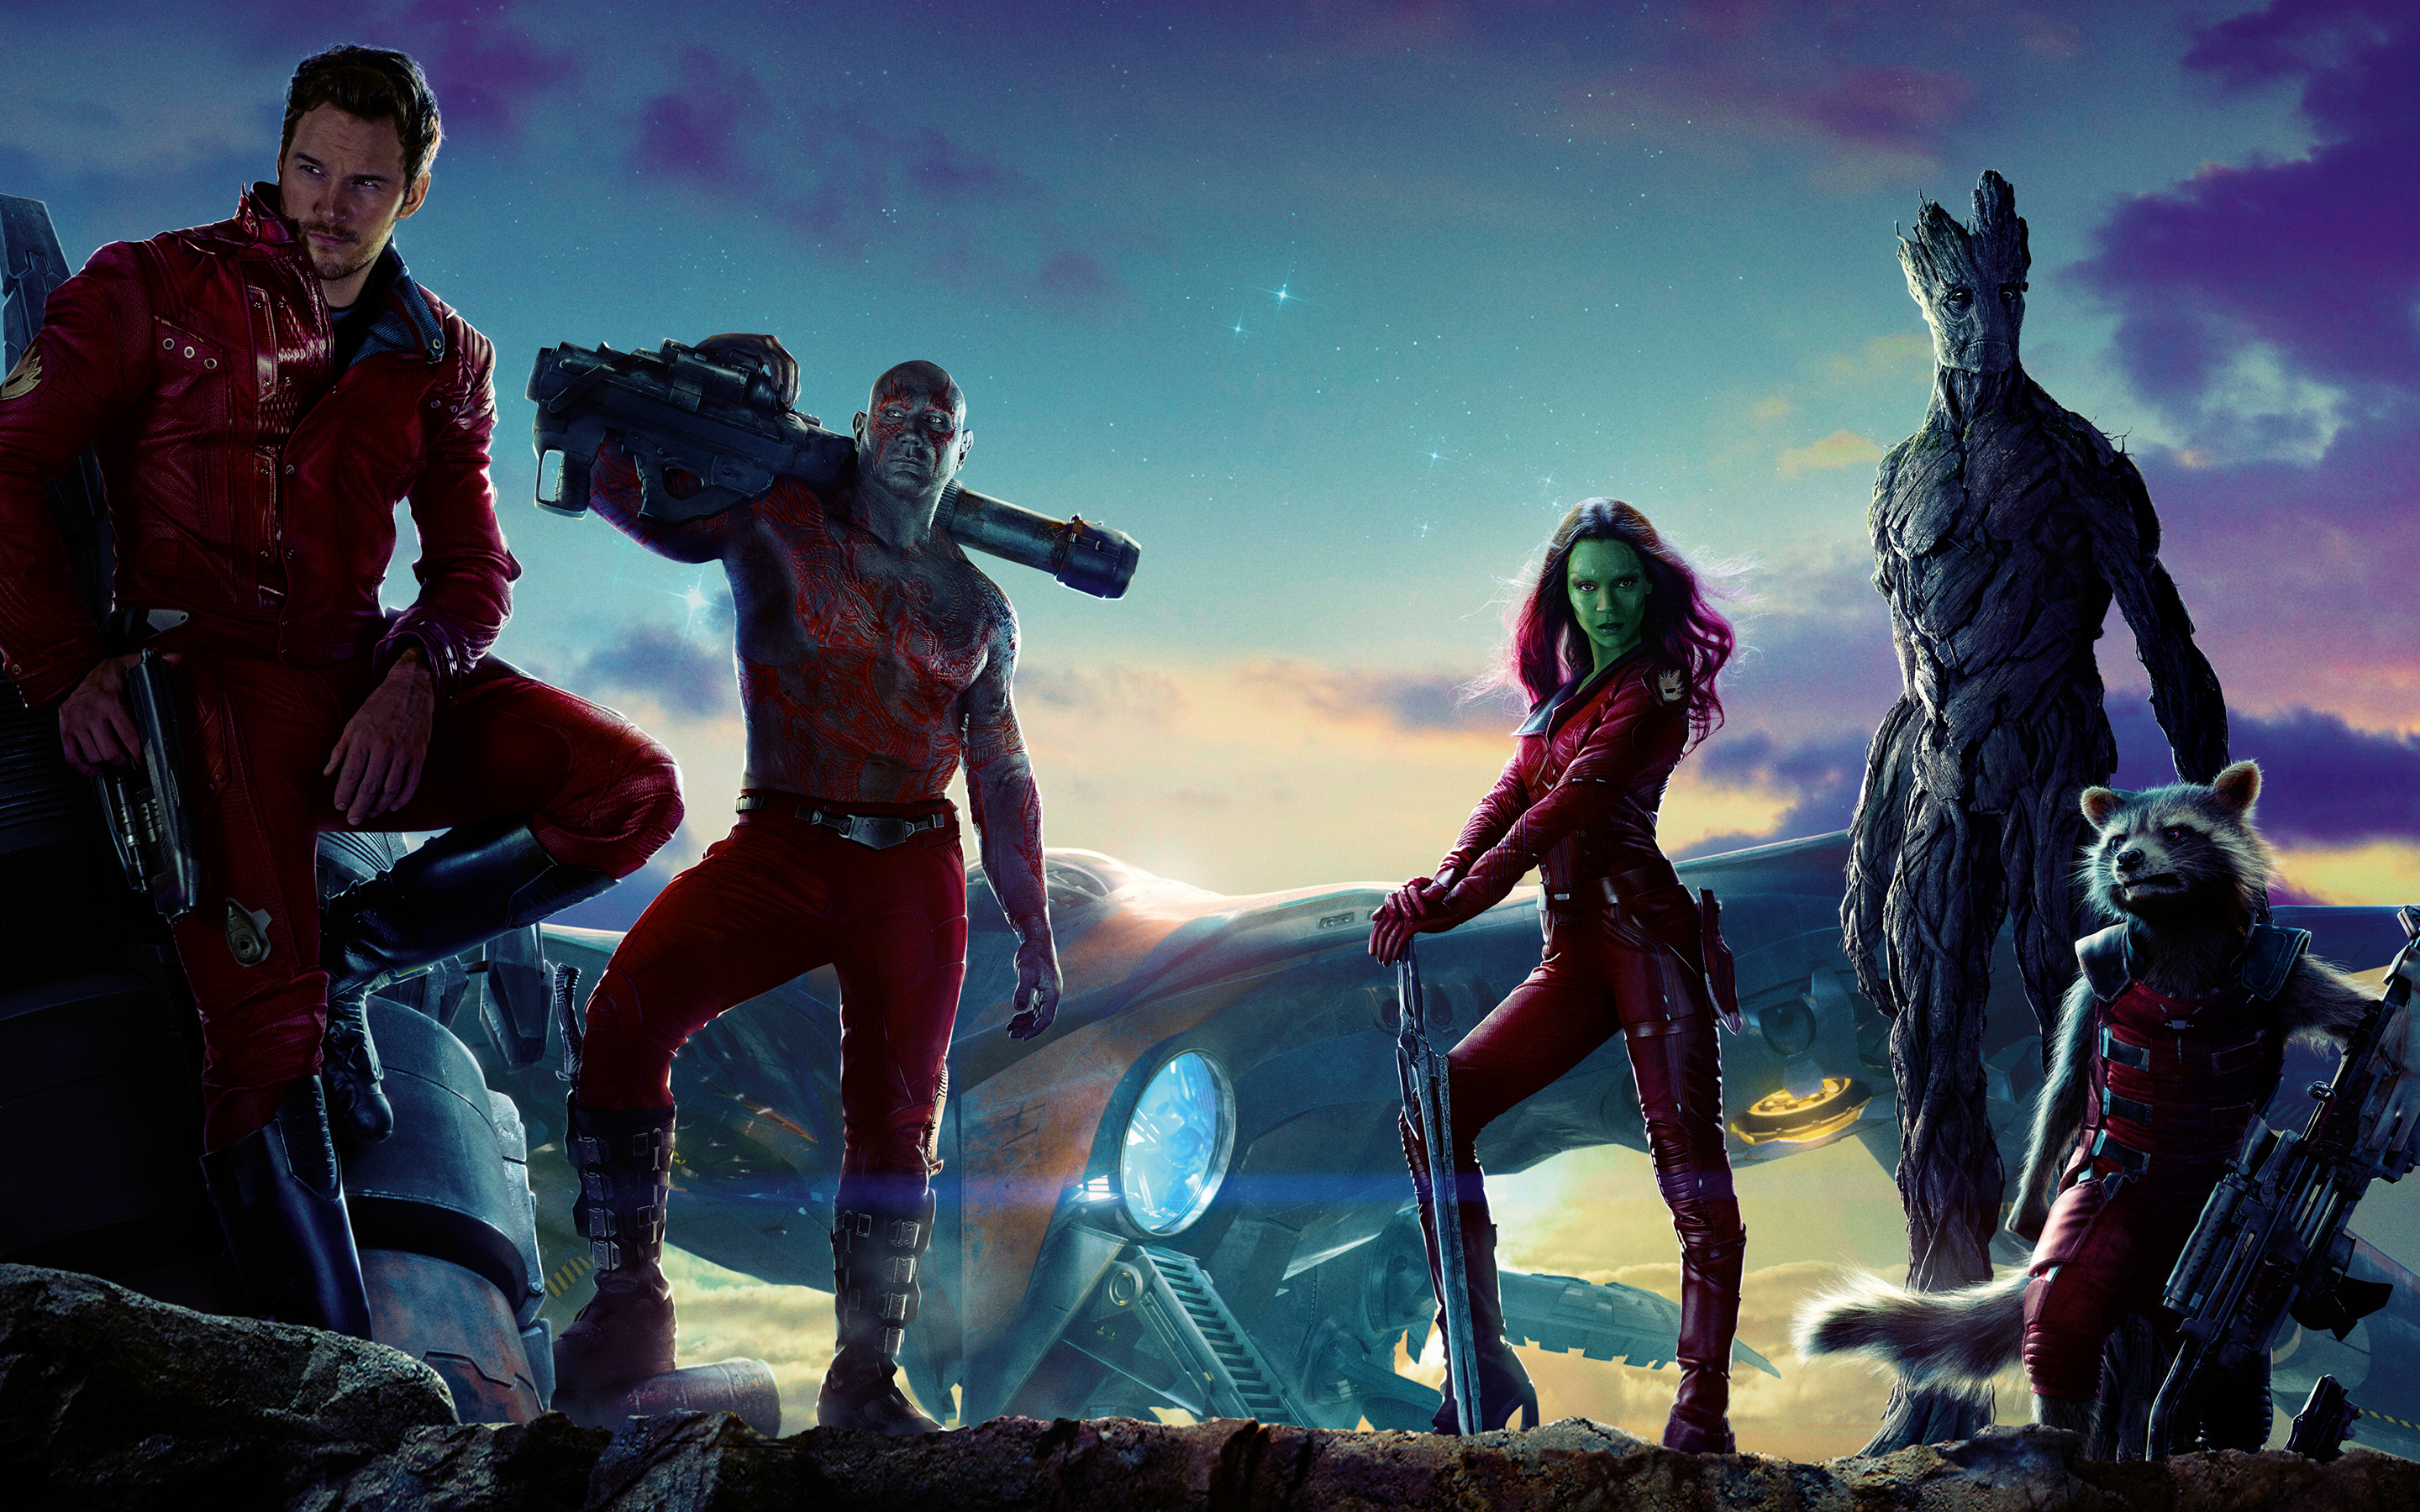 Guardians of the Galaxy wallpaper 1